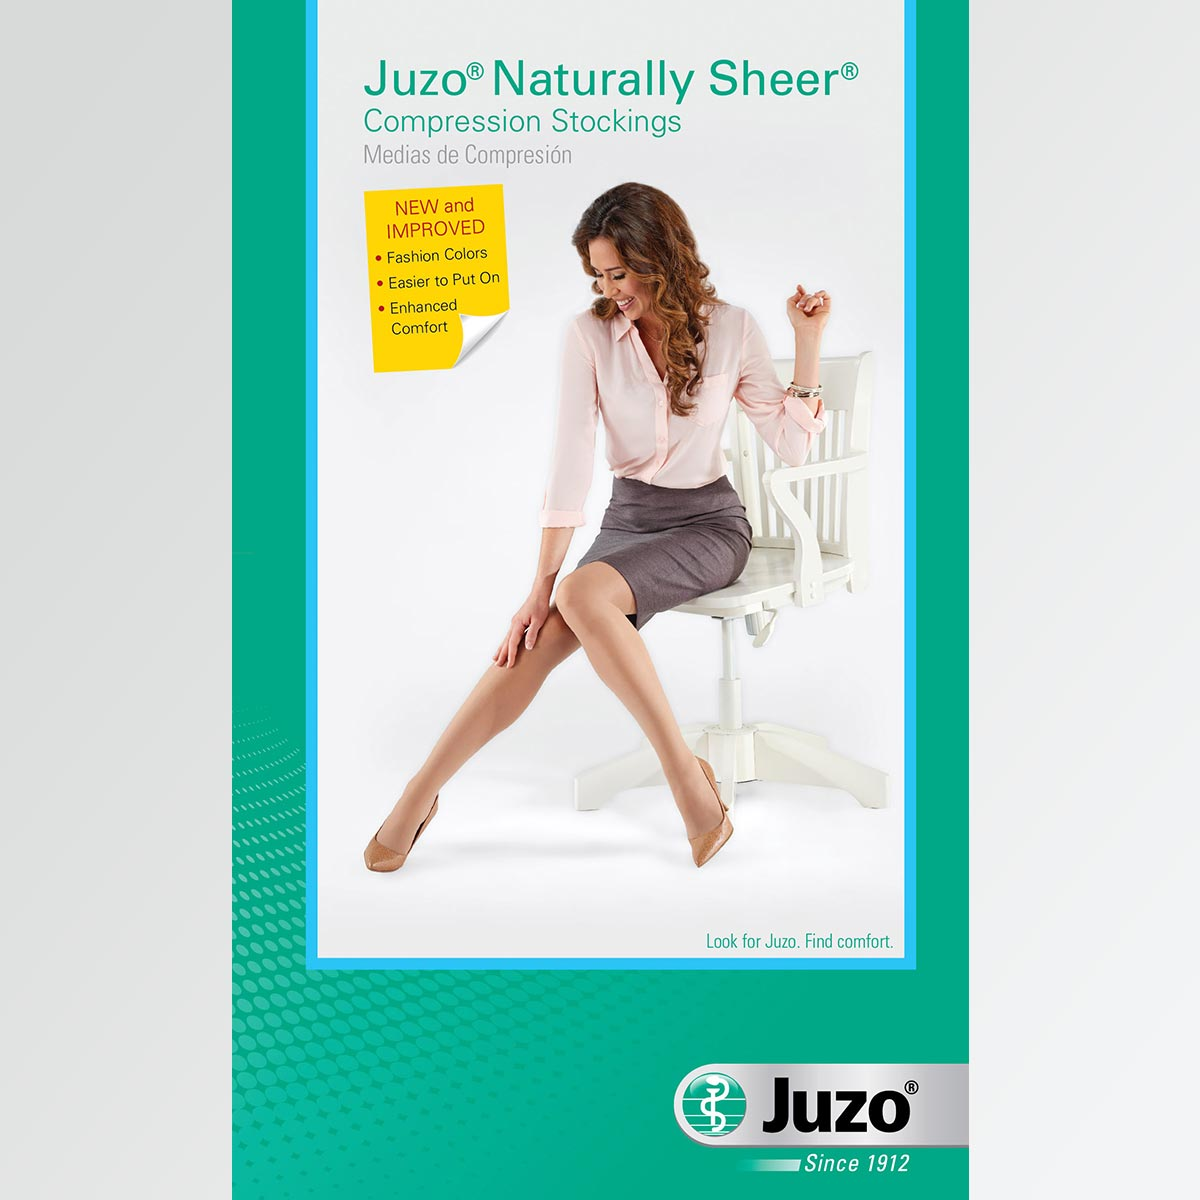 Juzo Naturally Sheer Compression Stockings